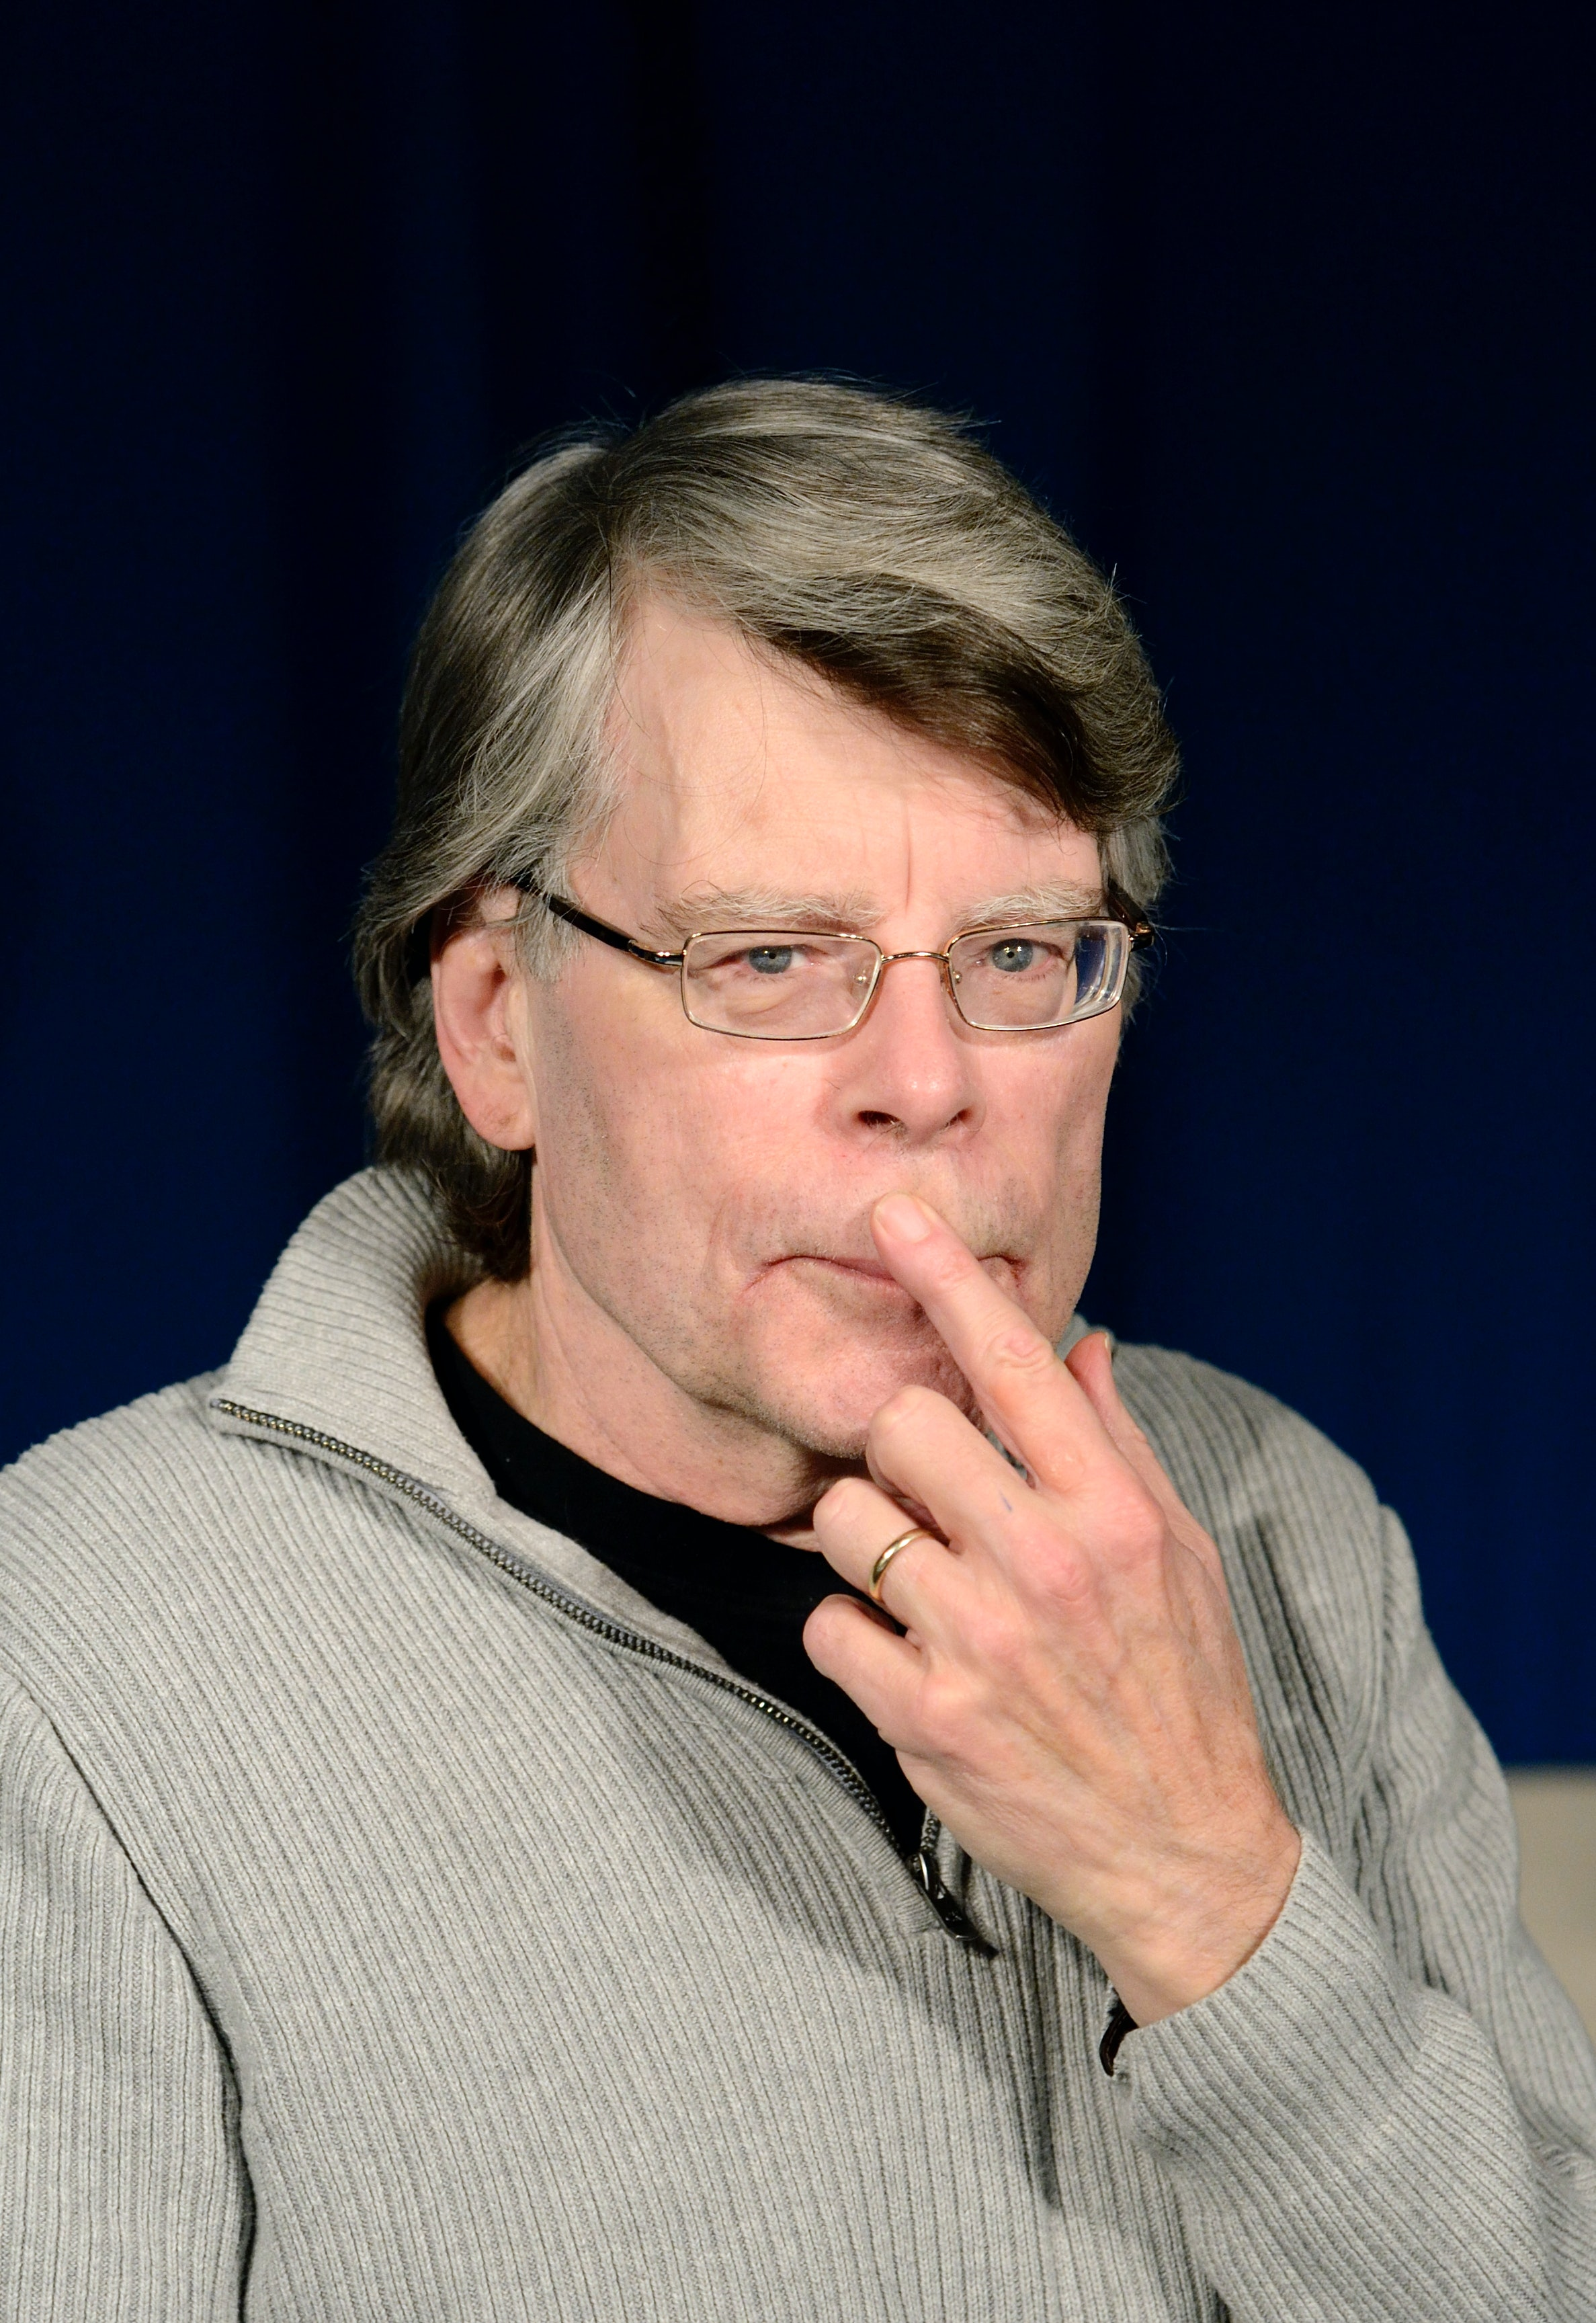 books that scared the master of horror stephen king and will 11 books that scared the master of horror stephen king and will terrify you too